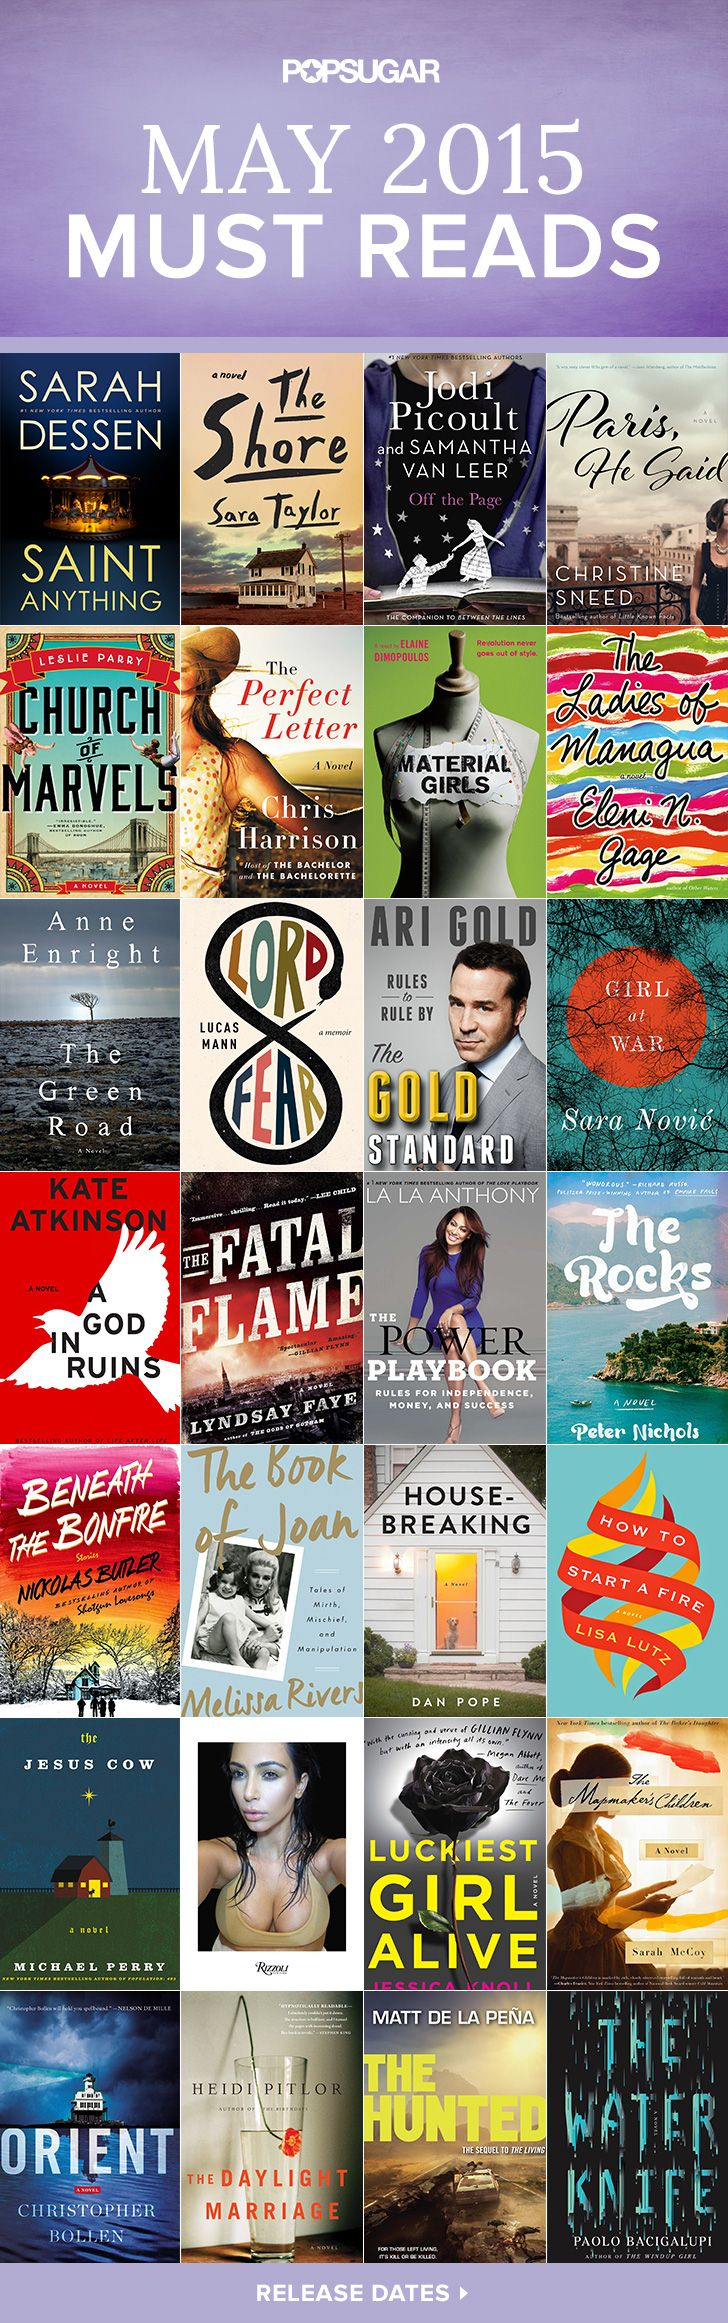 145 best reading me images on pinterest reading lists book 145 best reading me images on pinterest reading lists book worms and libraries fandeluxe Images